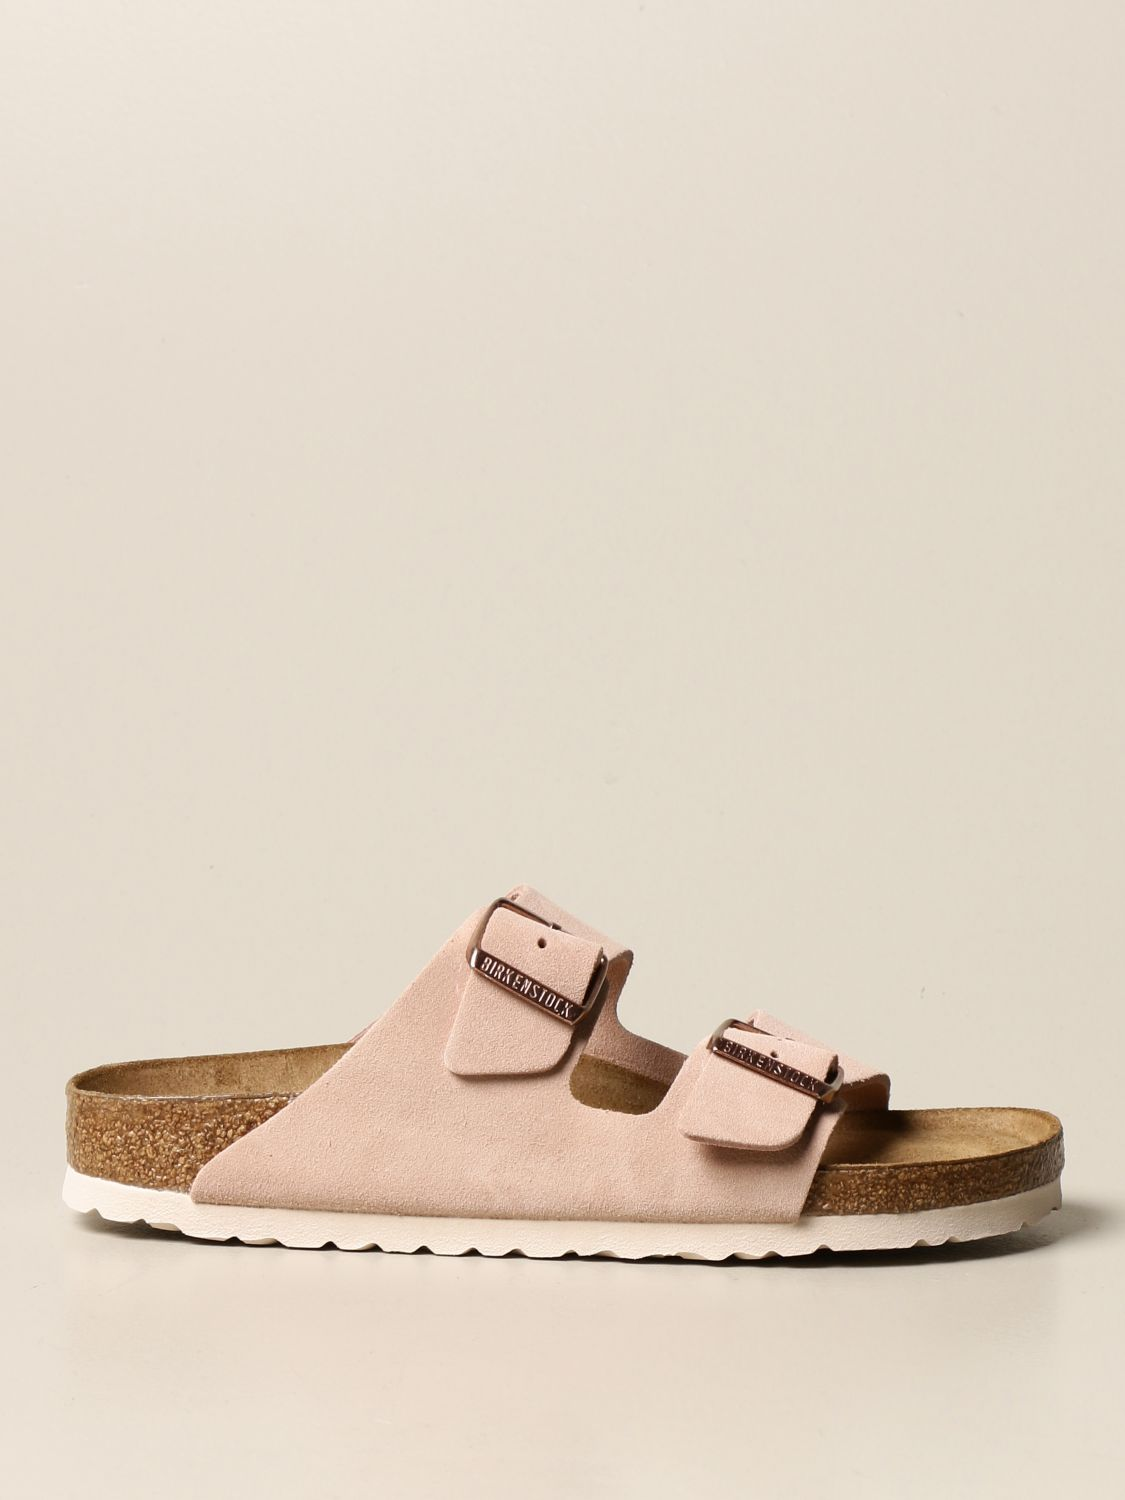 Sandals Birkenstock: Shoes men Birkenstock pink 1